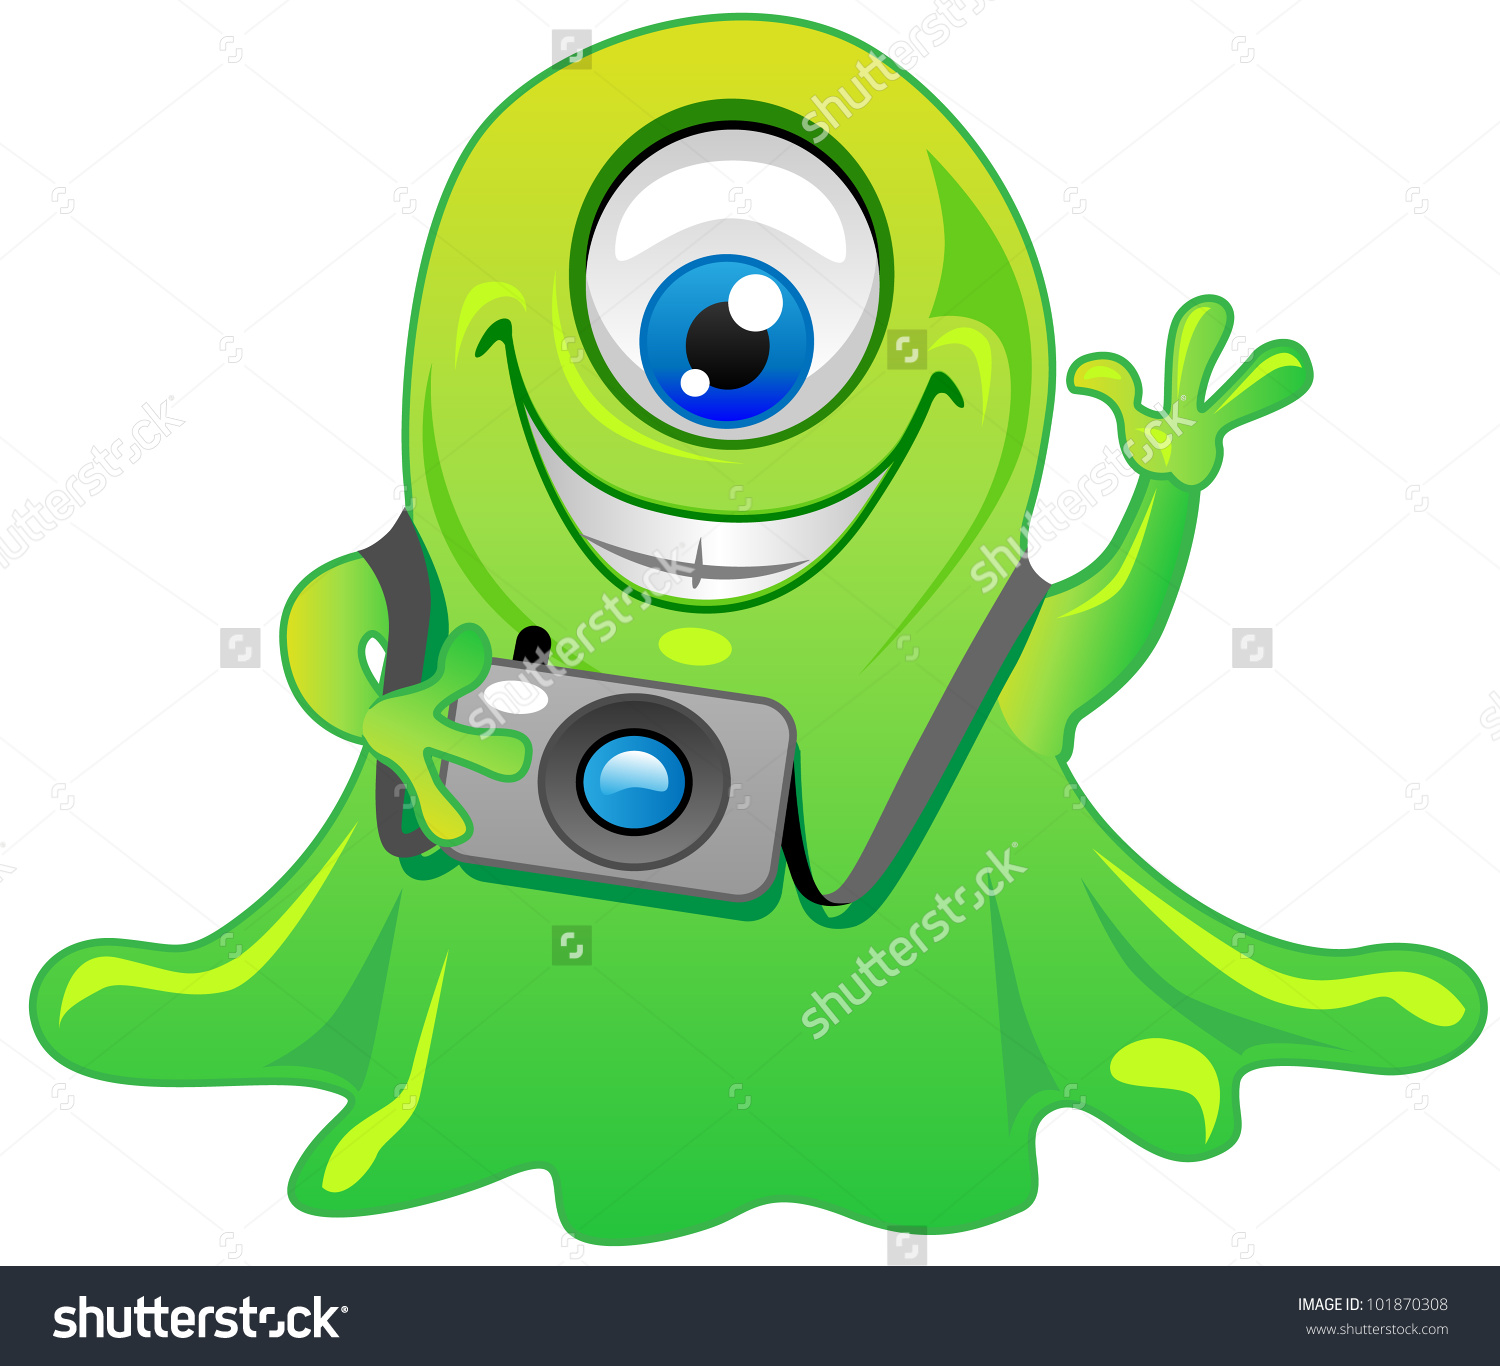 Cute Friendly Green One Eye Slime Stock Vector 101870308.